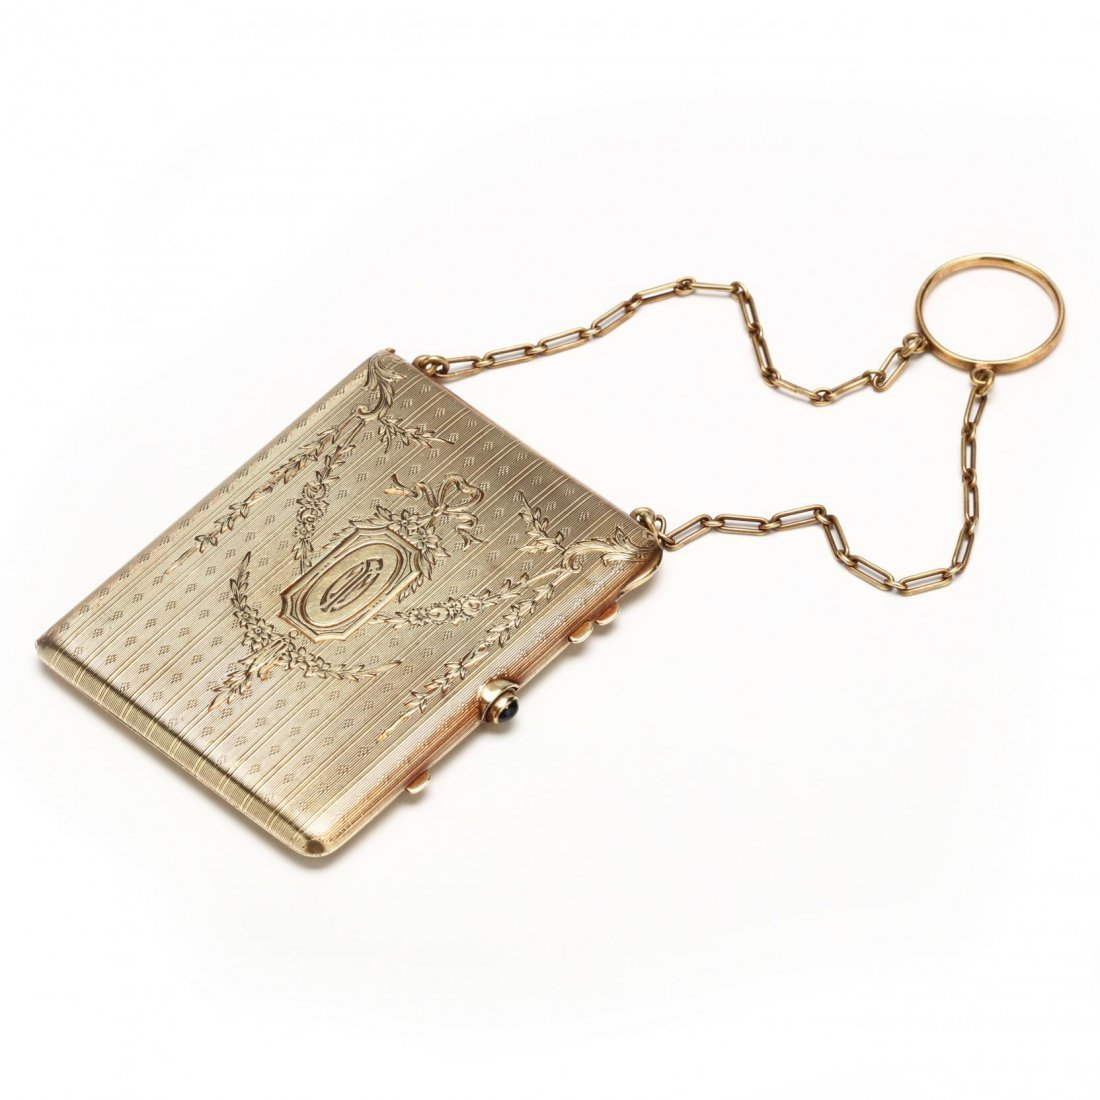 Edwardian 14KT Compact with Chain and Ring, Tiffany &